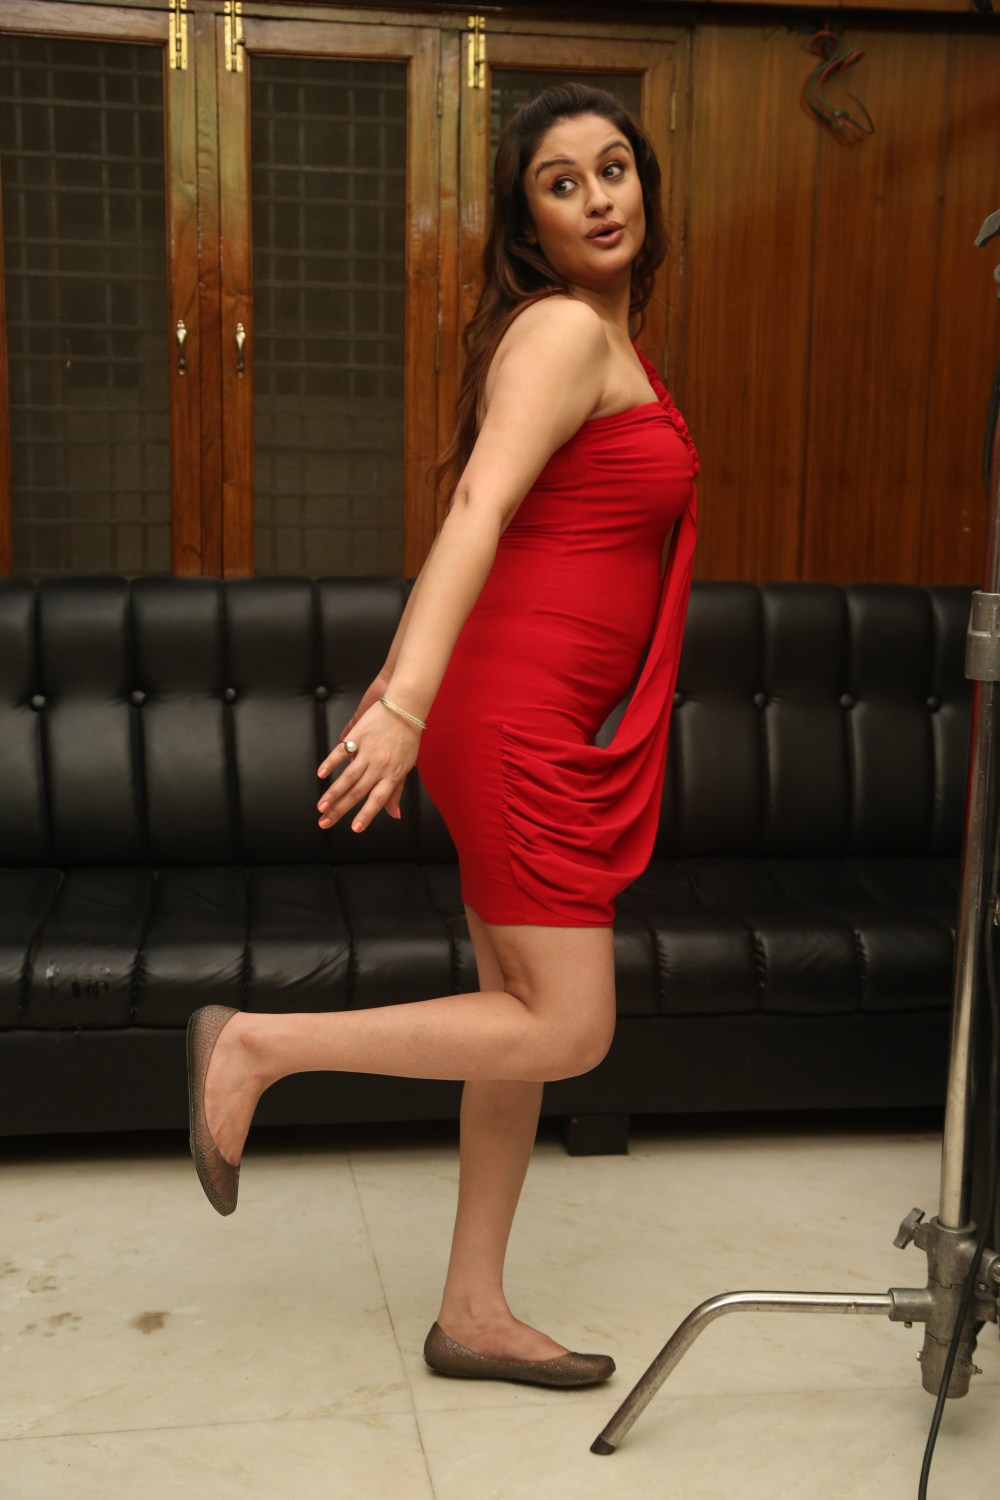 Sonia Red nude 345